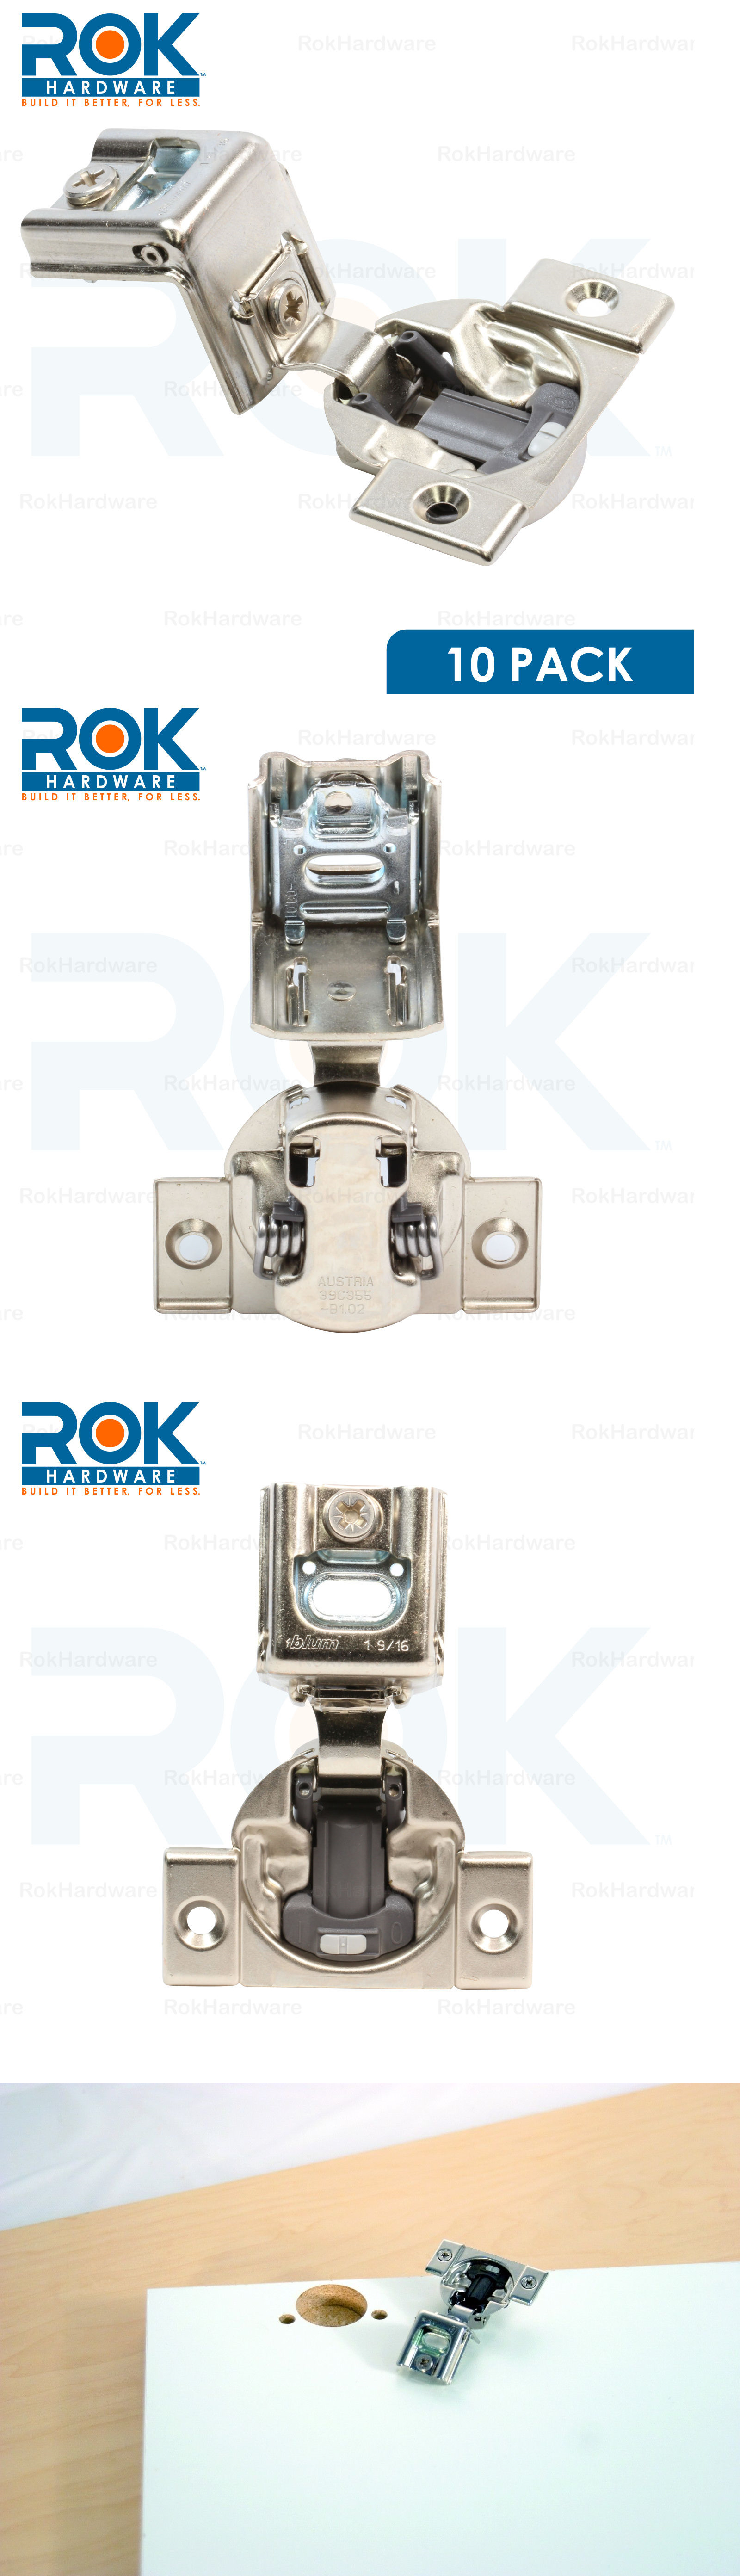 pack closing today free home blumotion hardware degree hinge rok product overlay series cabinet soft screw hinges compact shipping blum on garden